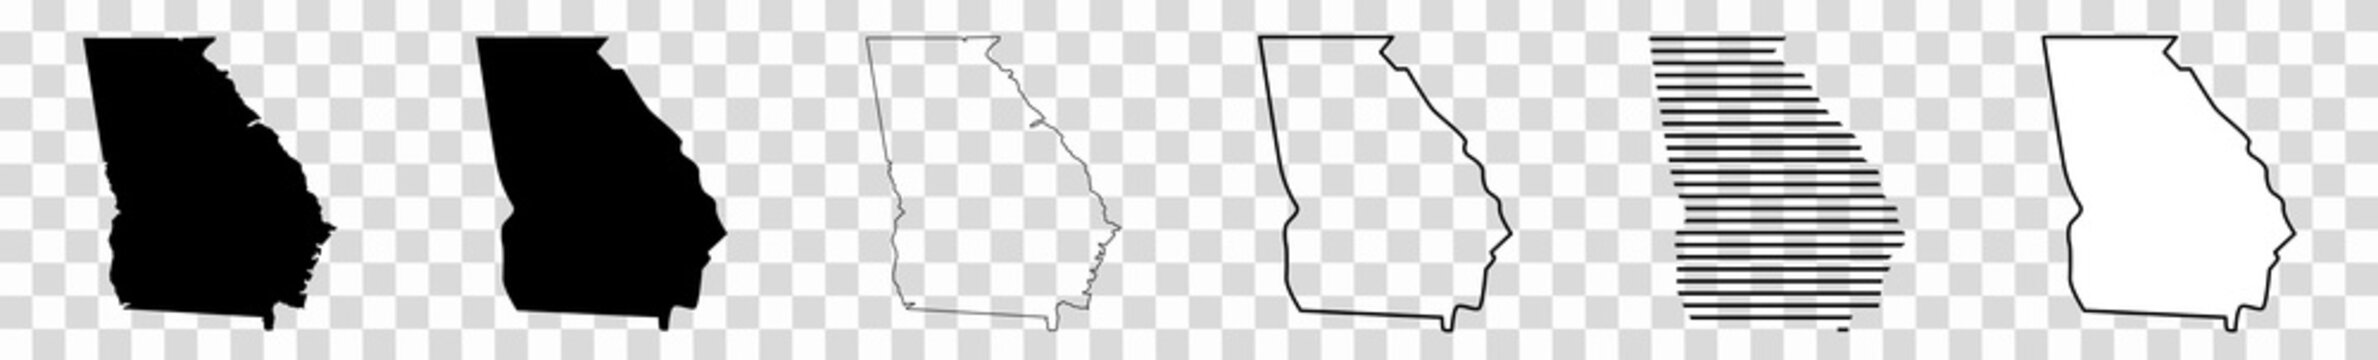 Georgia Map Black | State Border | United States | US America | Transparent Isolated | Variations